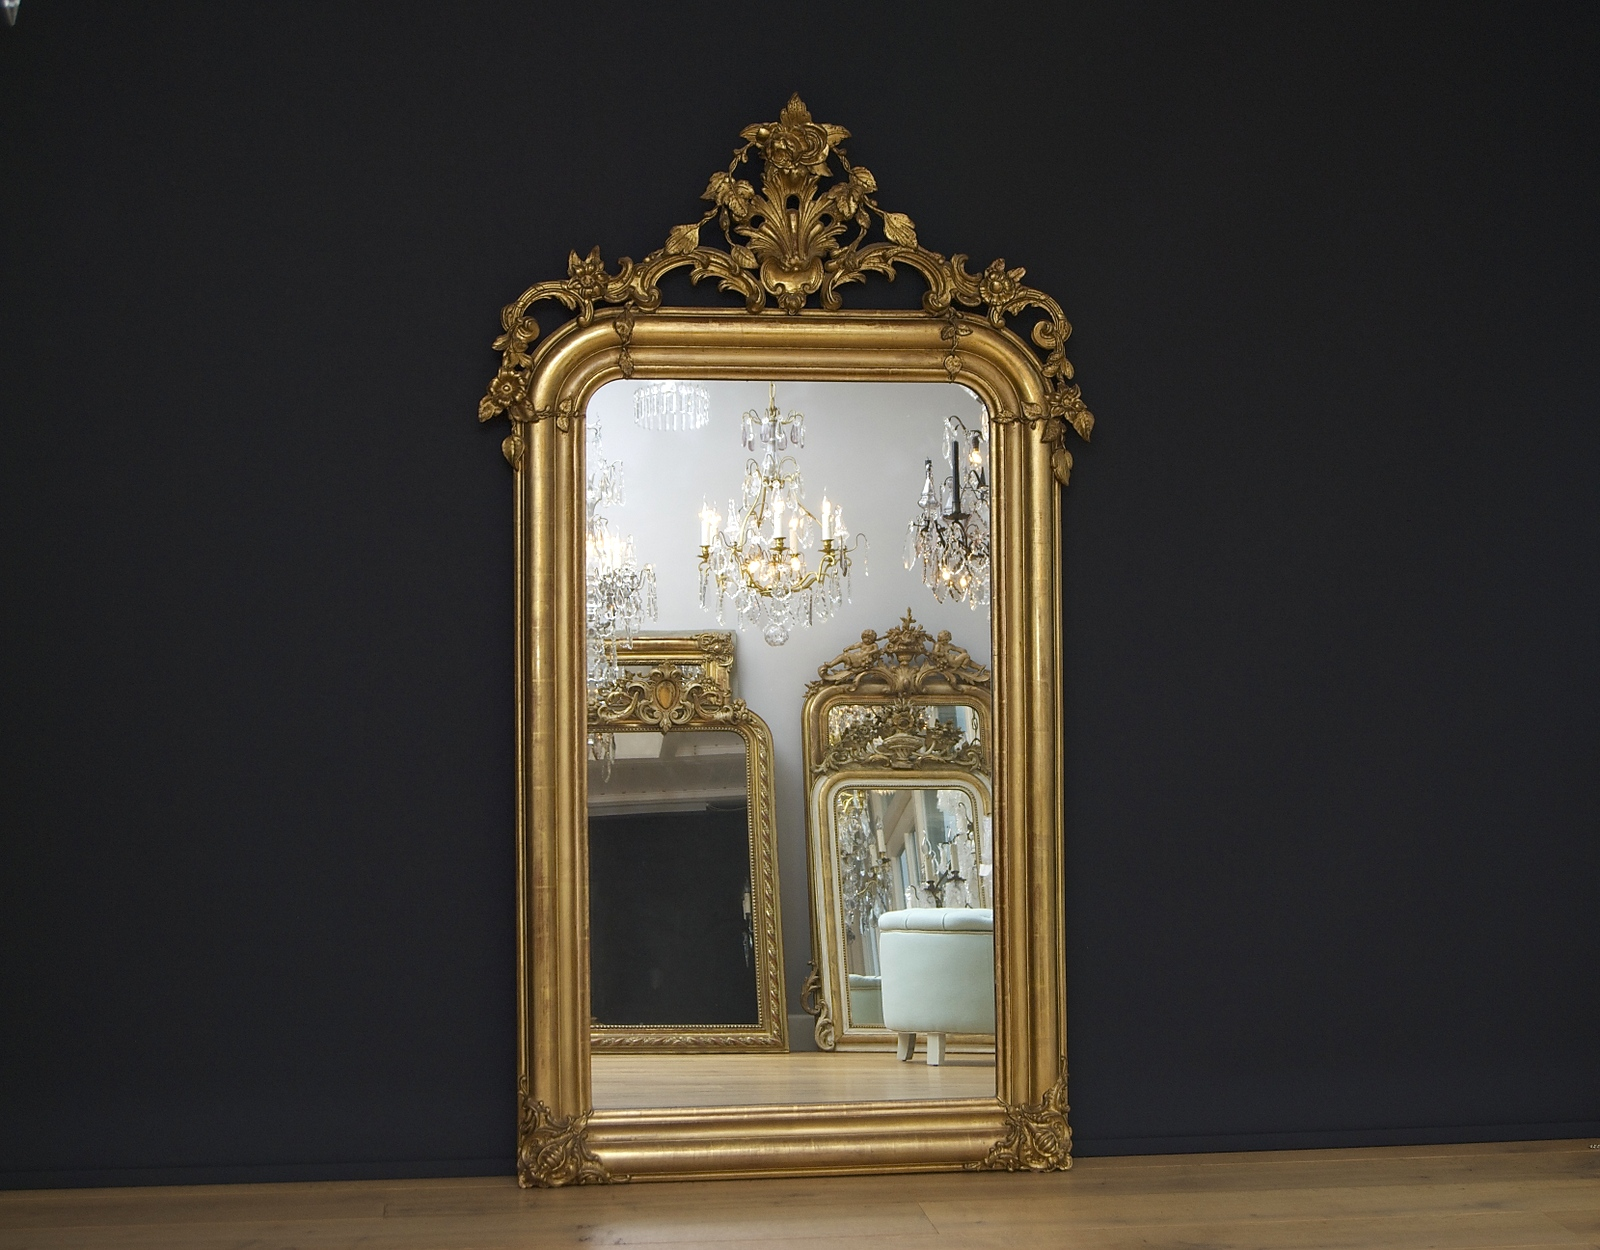 19th century French gilded mirror with a magnificent crown